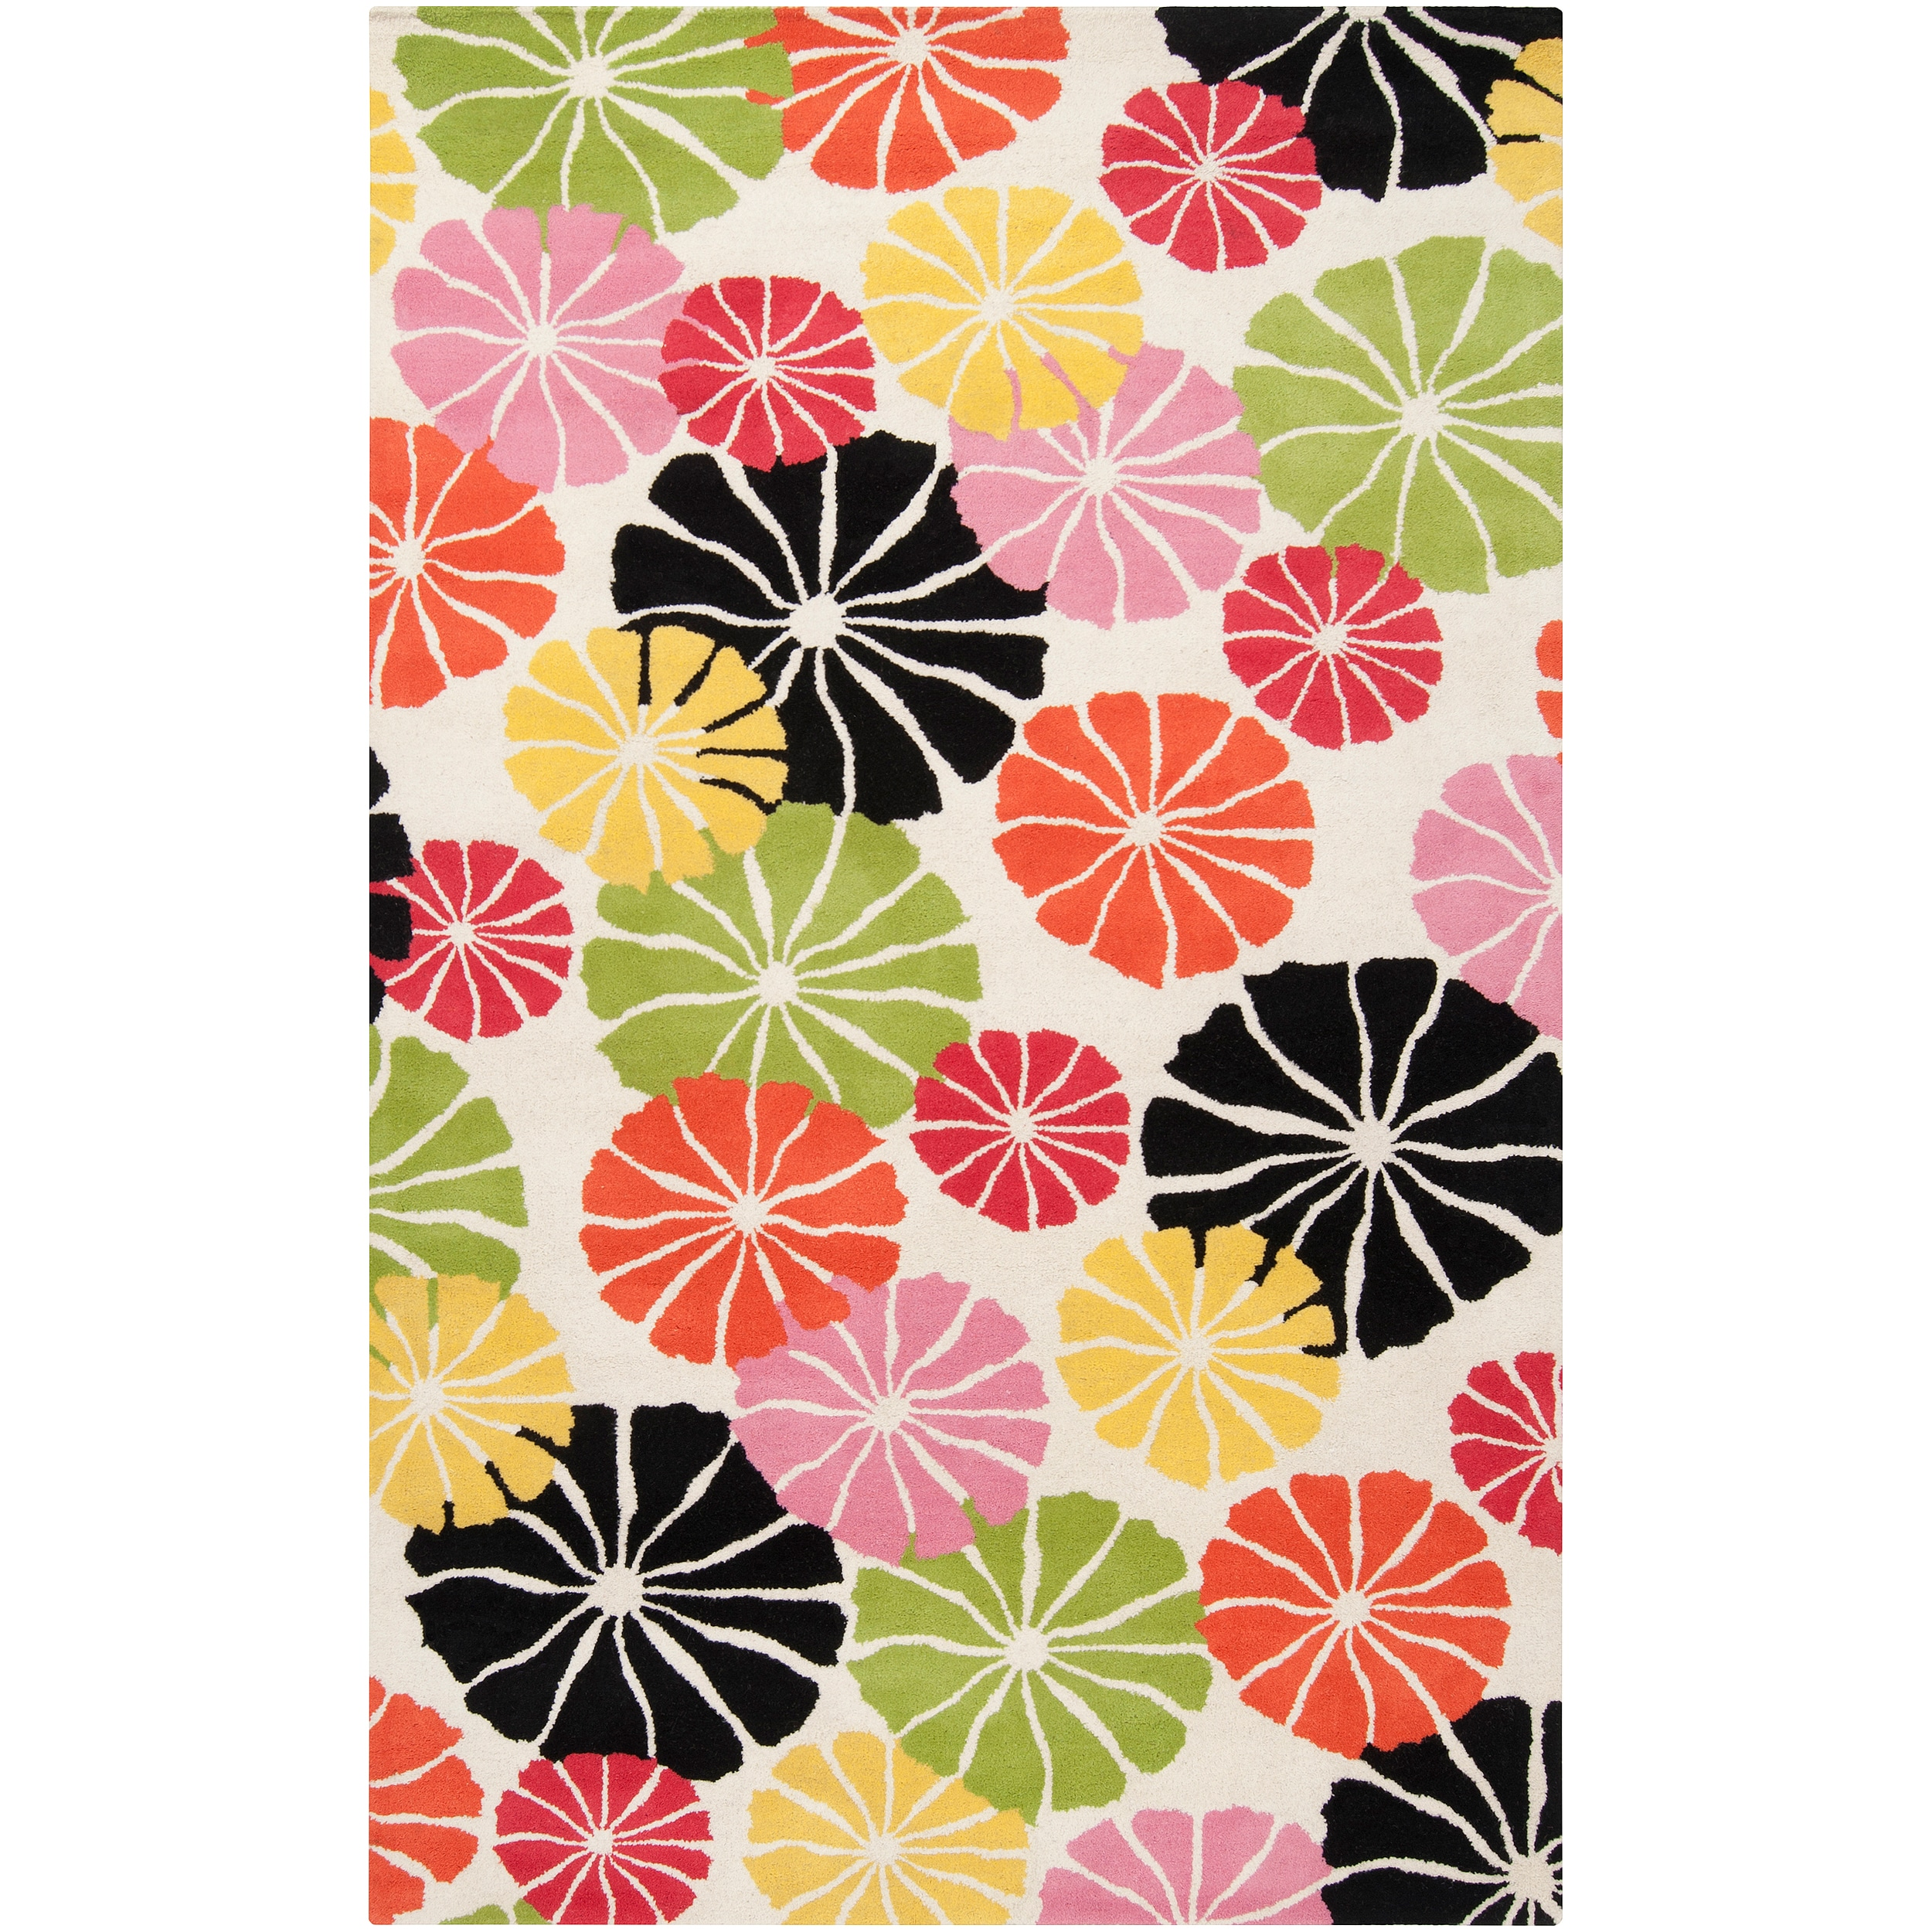 """Tepper Jackson Hand-Tufted Contemporary Abstract Multicolored Floral Dreamscape Wool Rug (3'3"""" x 5'3"""")"""